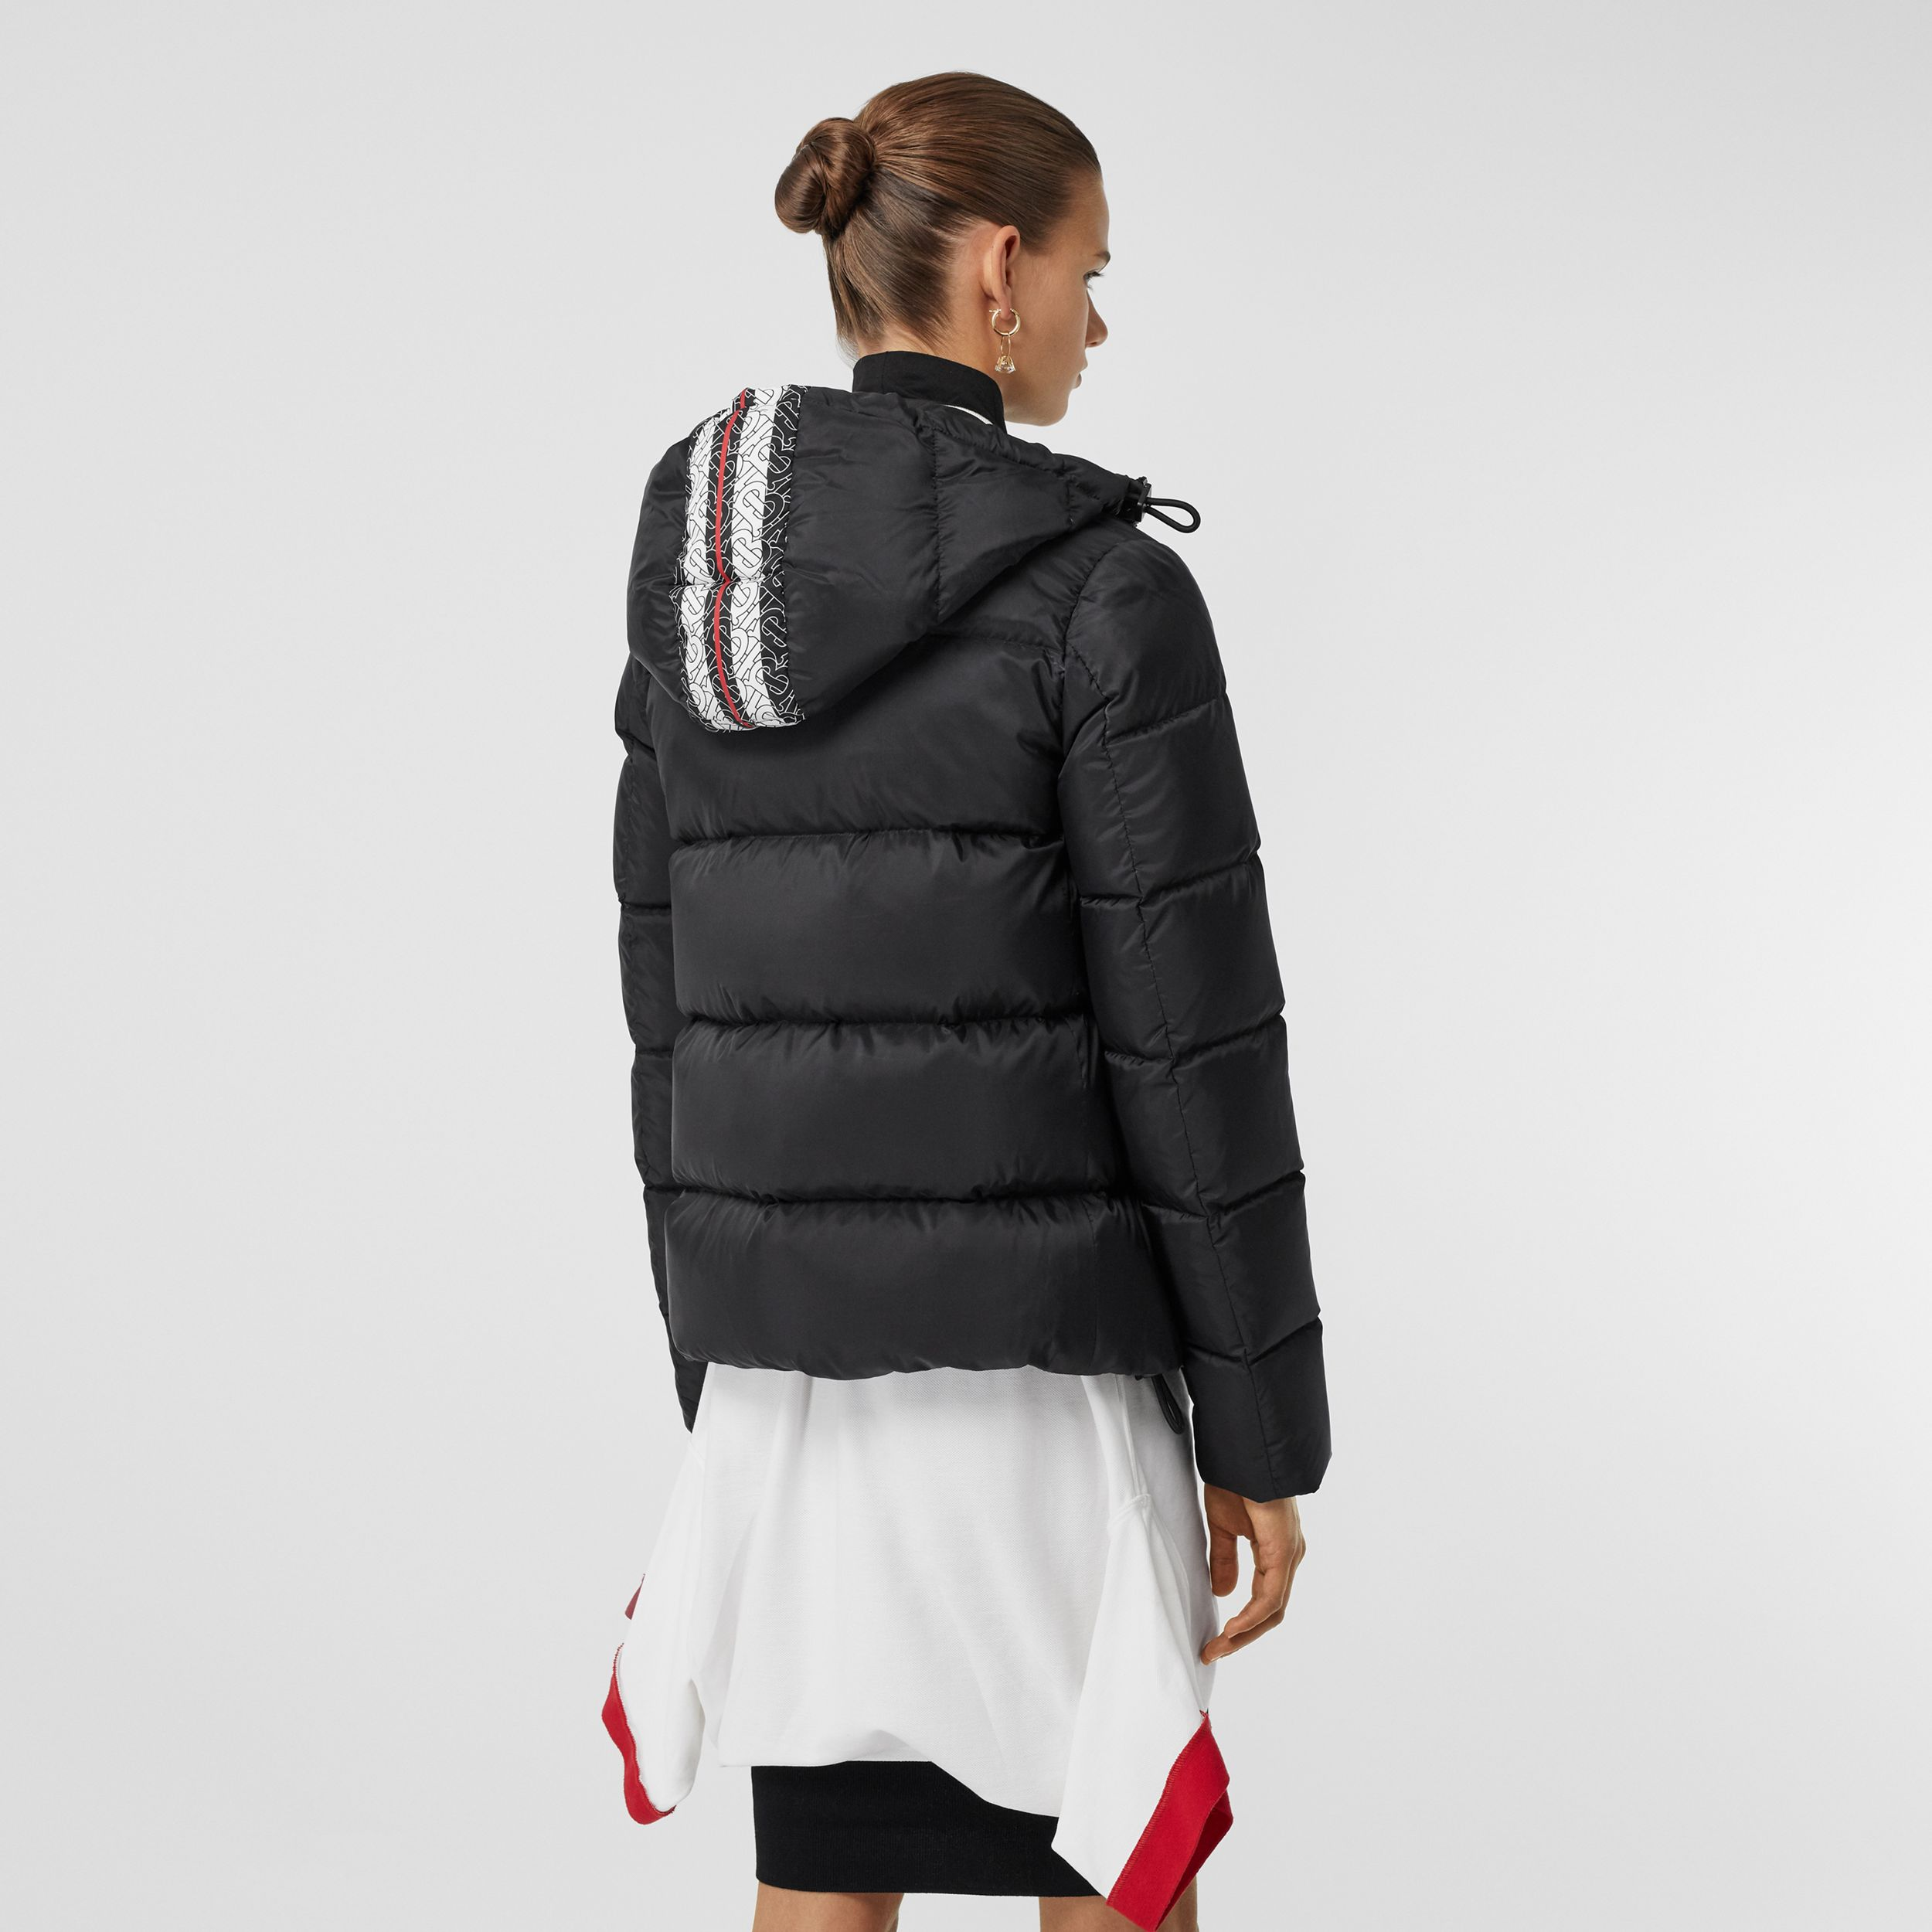 Monogram Stripe Print Hooded Puffer Jacket in Black - Women | Burberry - 3